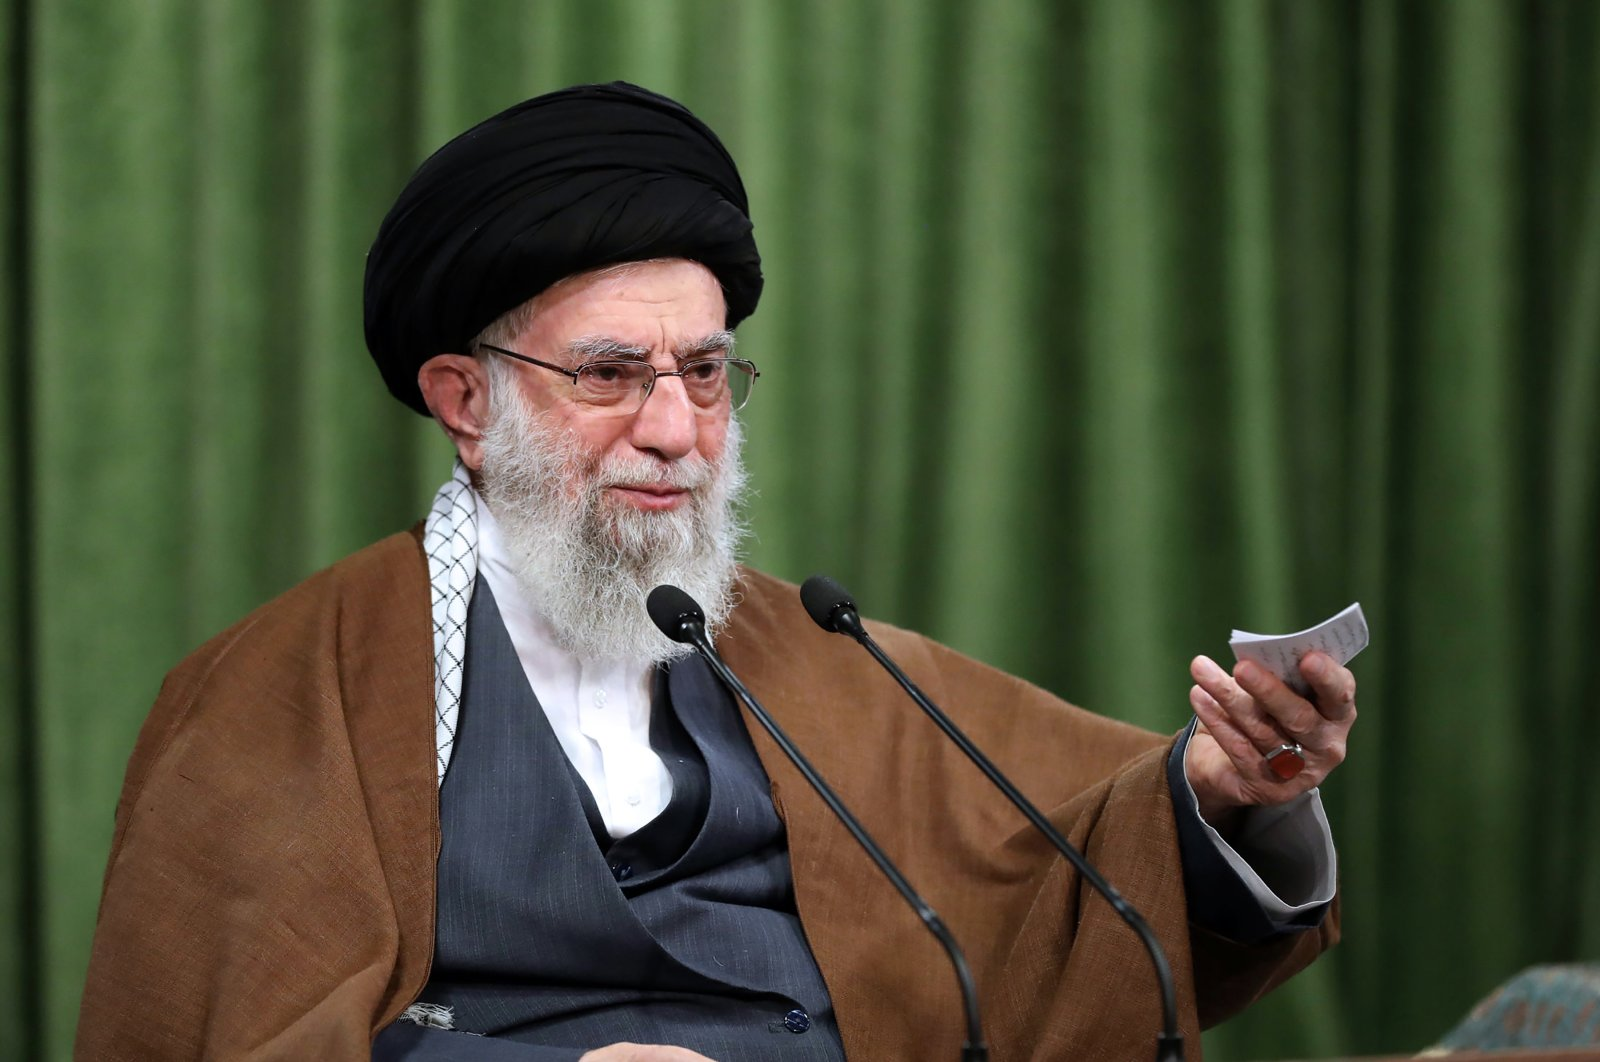 In this picture released by an official website of the office of the Iranian supreme leader, Supreme Leader Ayatollah Ali Khamenei addresses the nation in a televised speech marking the birthday of Islam's Prophet Muhammad, in Tehran, Iran, Nov. 3, 2020. (Office of the Iranian Supreme Leader via AP)